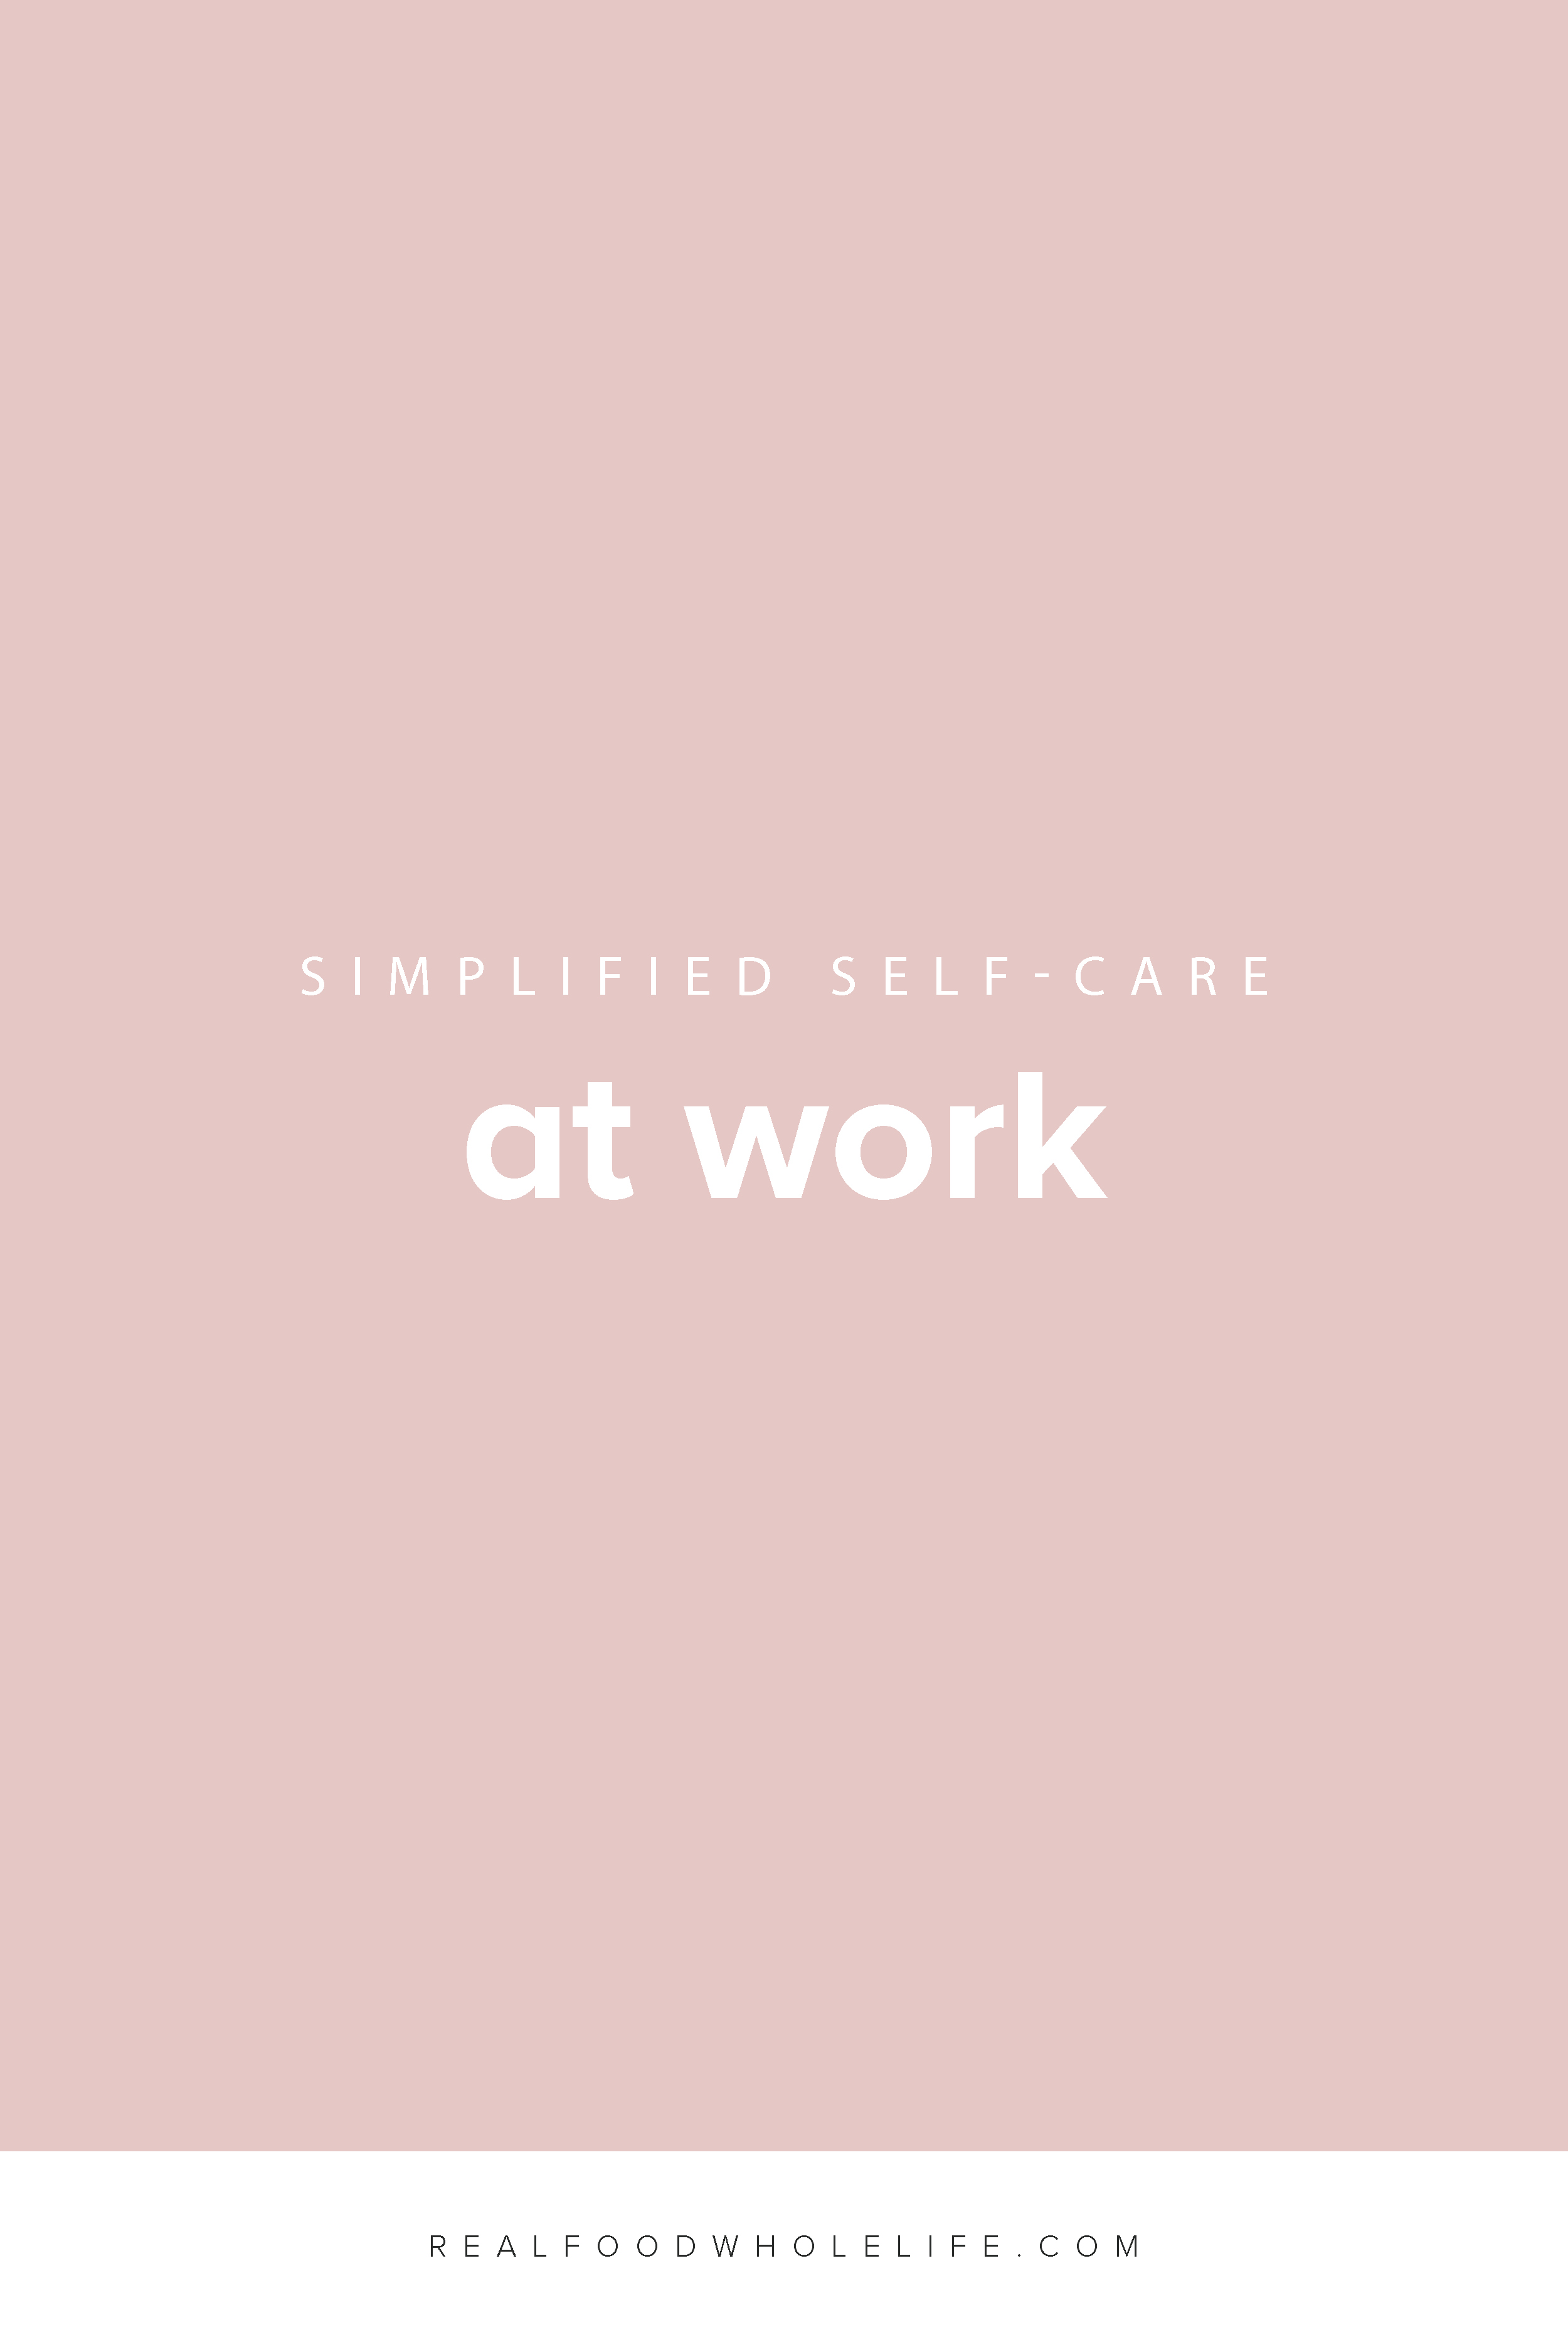 Simplified Self Care at Work